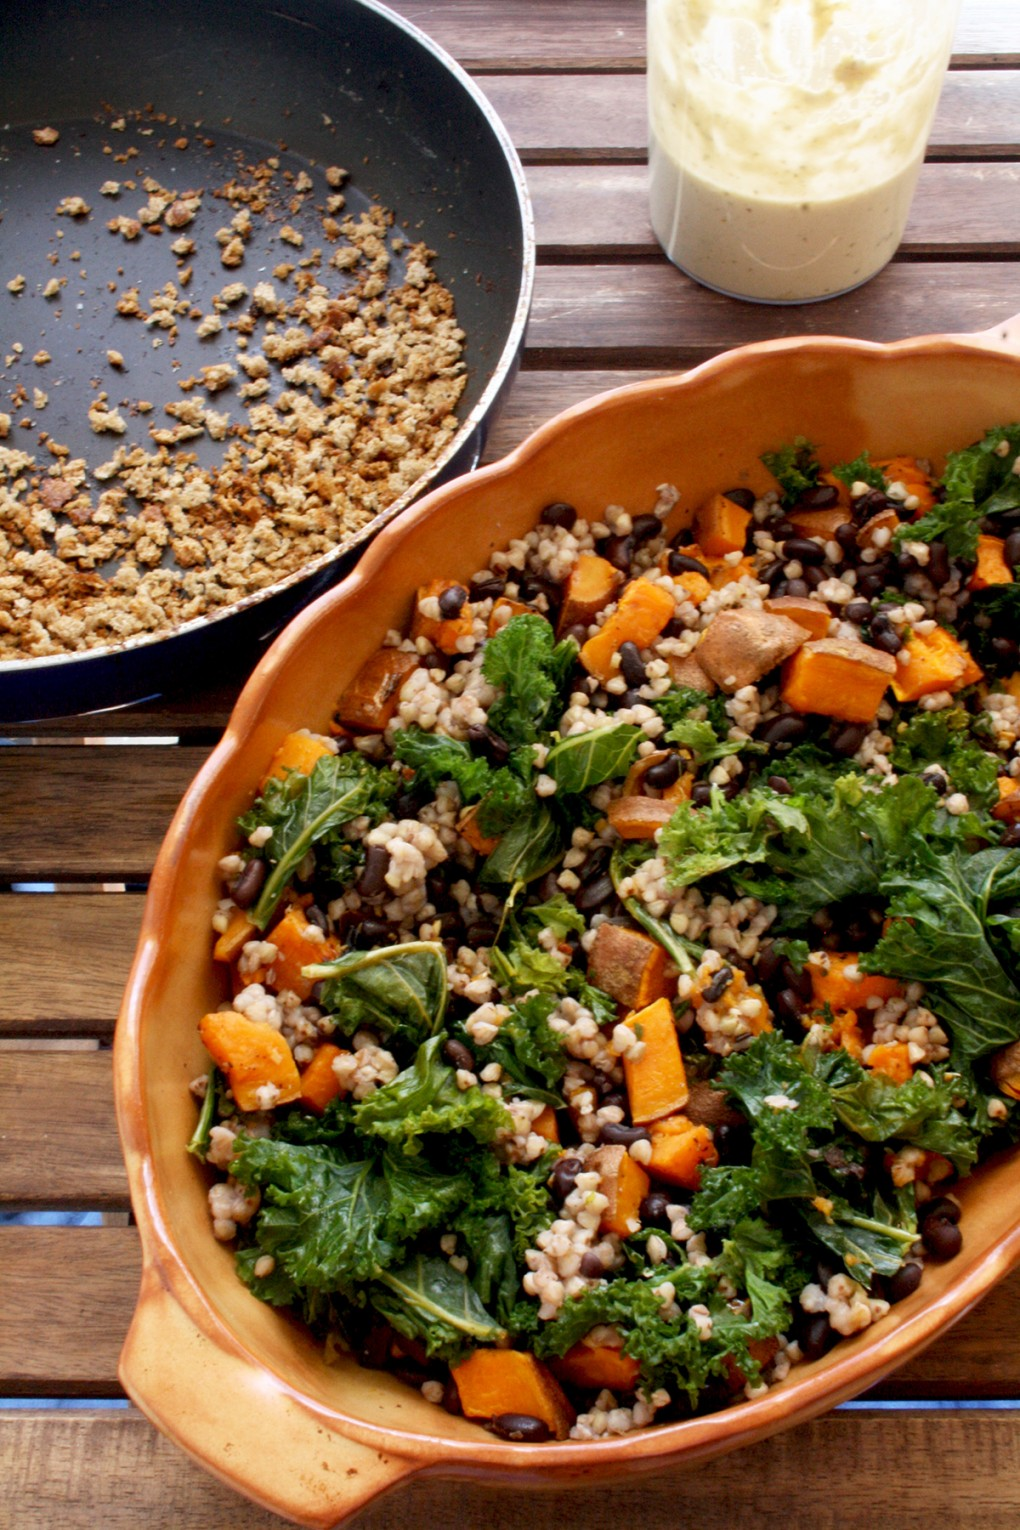 Sweet Potato Casserole with Kale , Black Beans and Buckwheat Before Baking